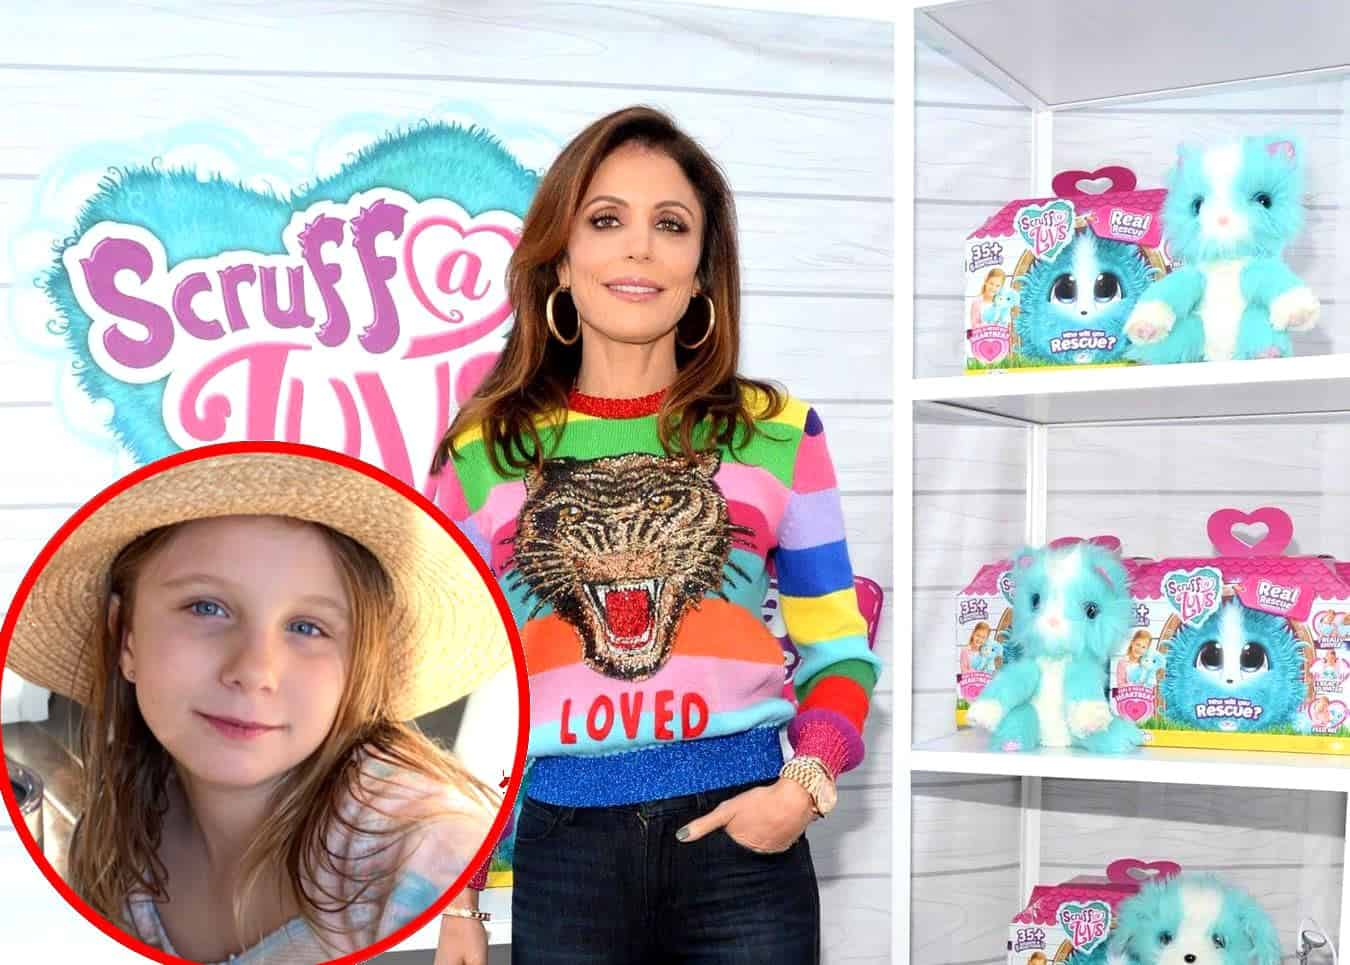 PHOTOS: Bethenny Frankel Shares Rare Pics of Daughter Bryn, Plus RHONY Alum Reveals Surprising and Ironic Quality People May Not Know About Her